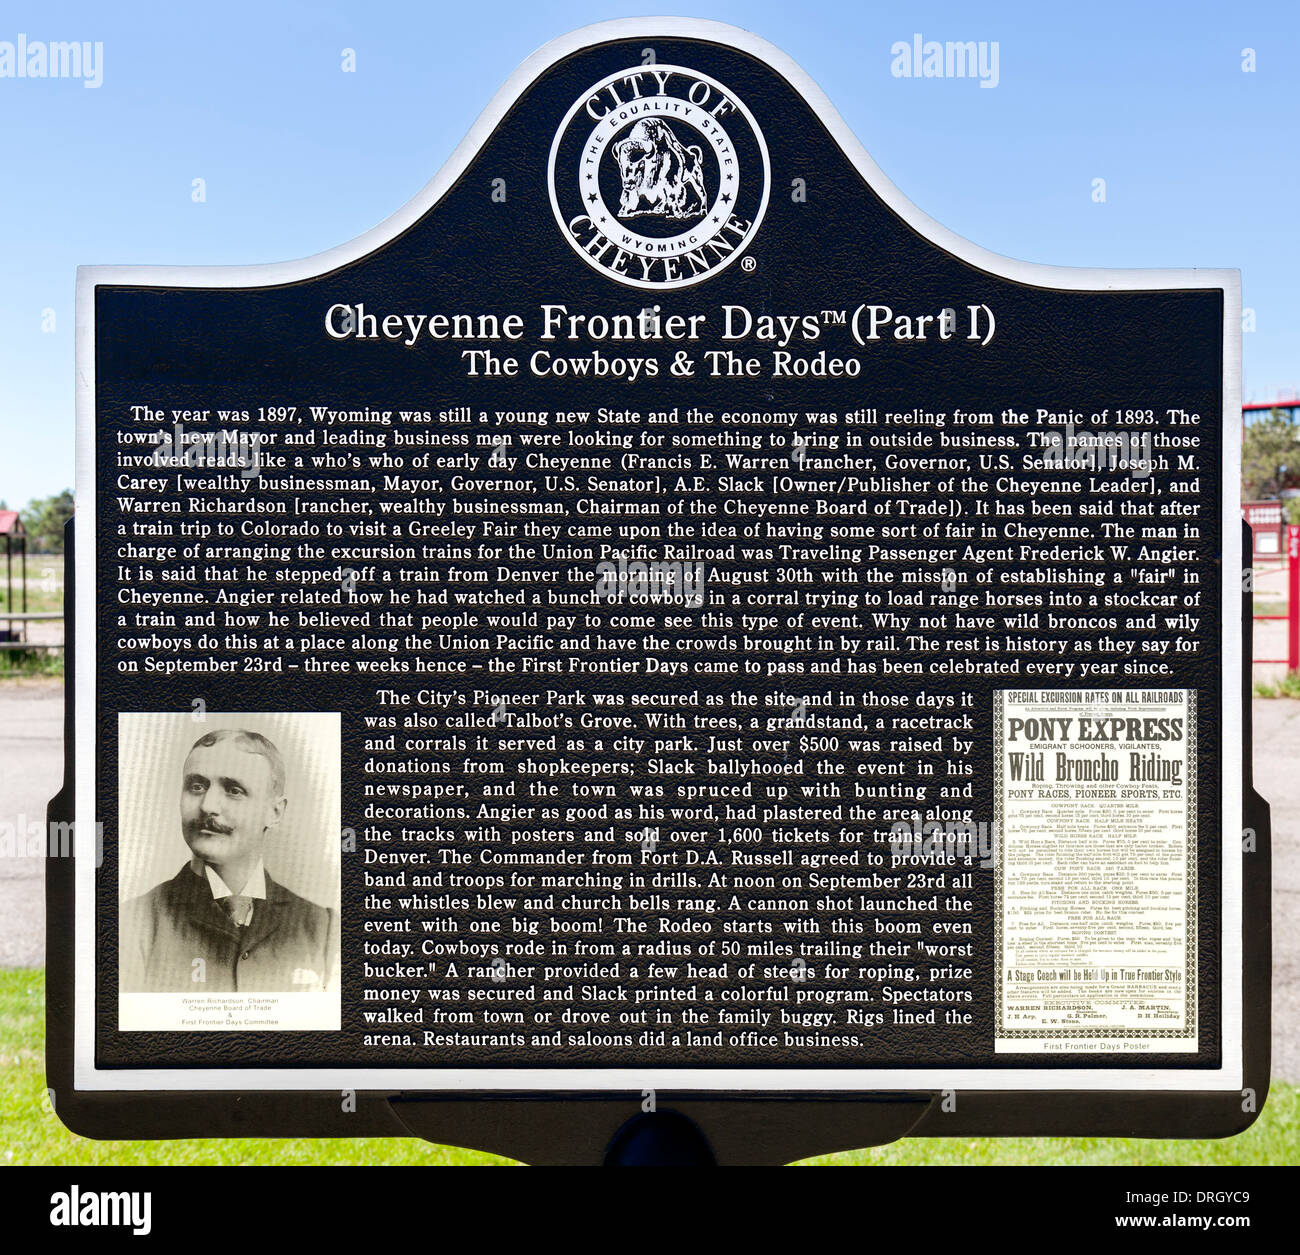 Plaque describing the history of Cheyenne Frontier Days, Cheyenne, Wyoming, USA - Stock Image